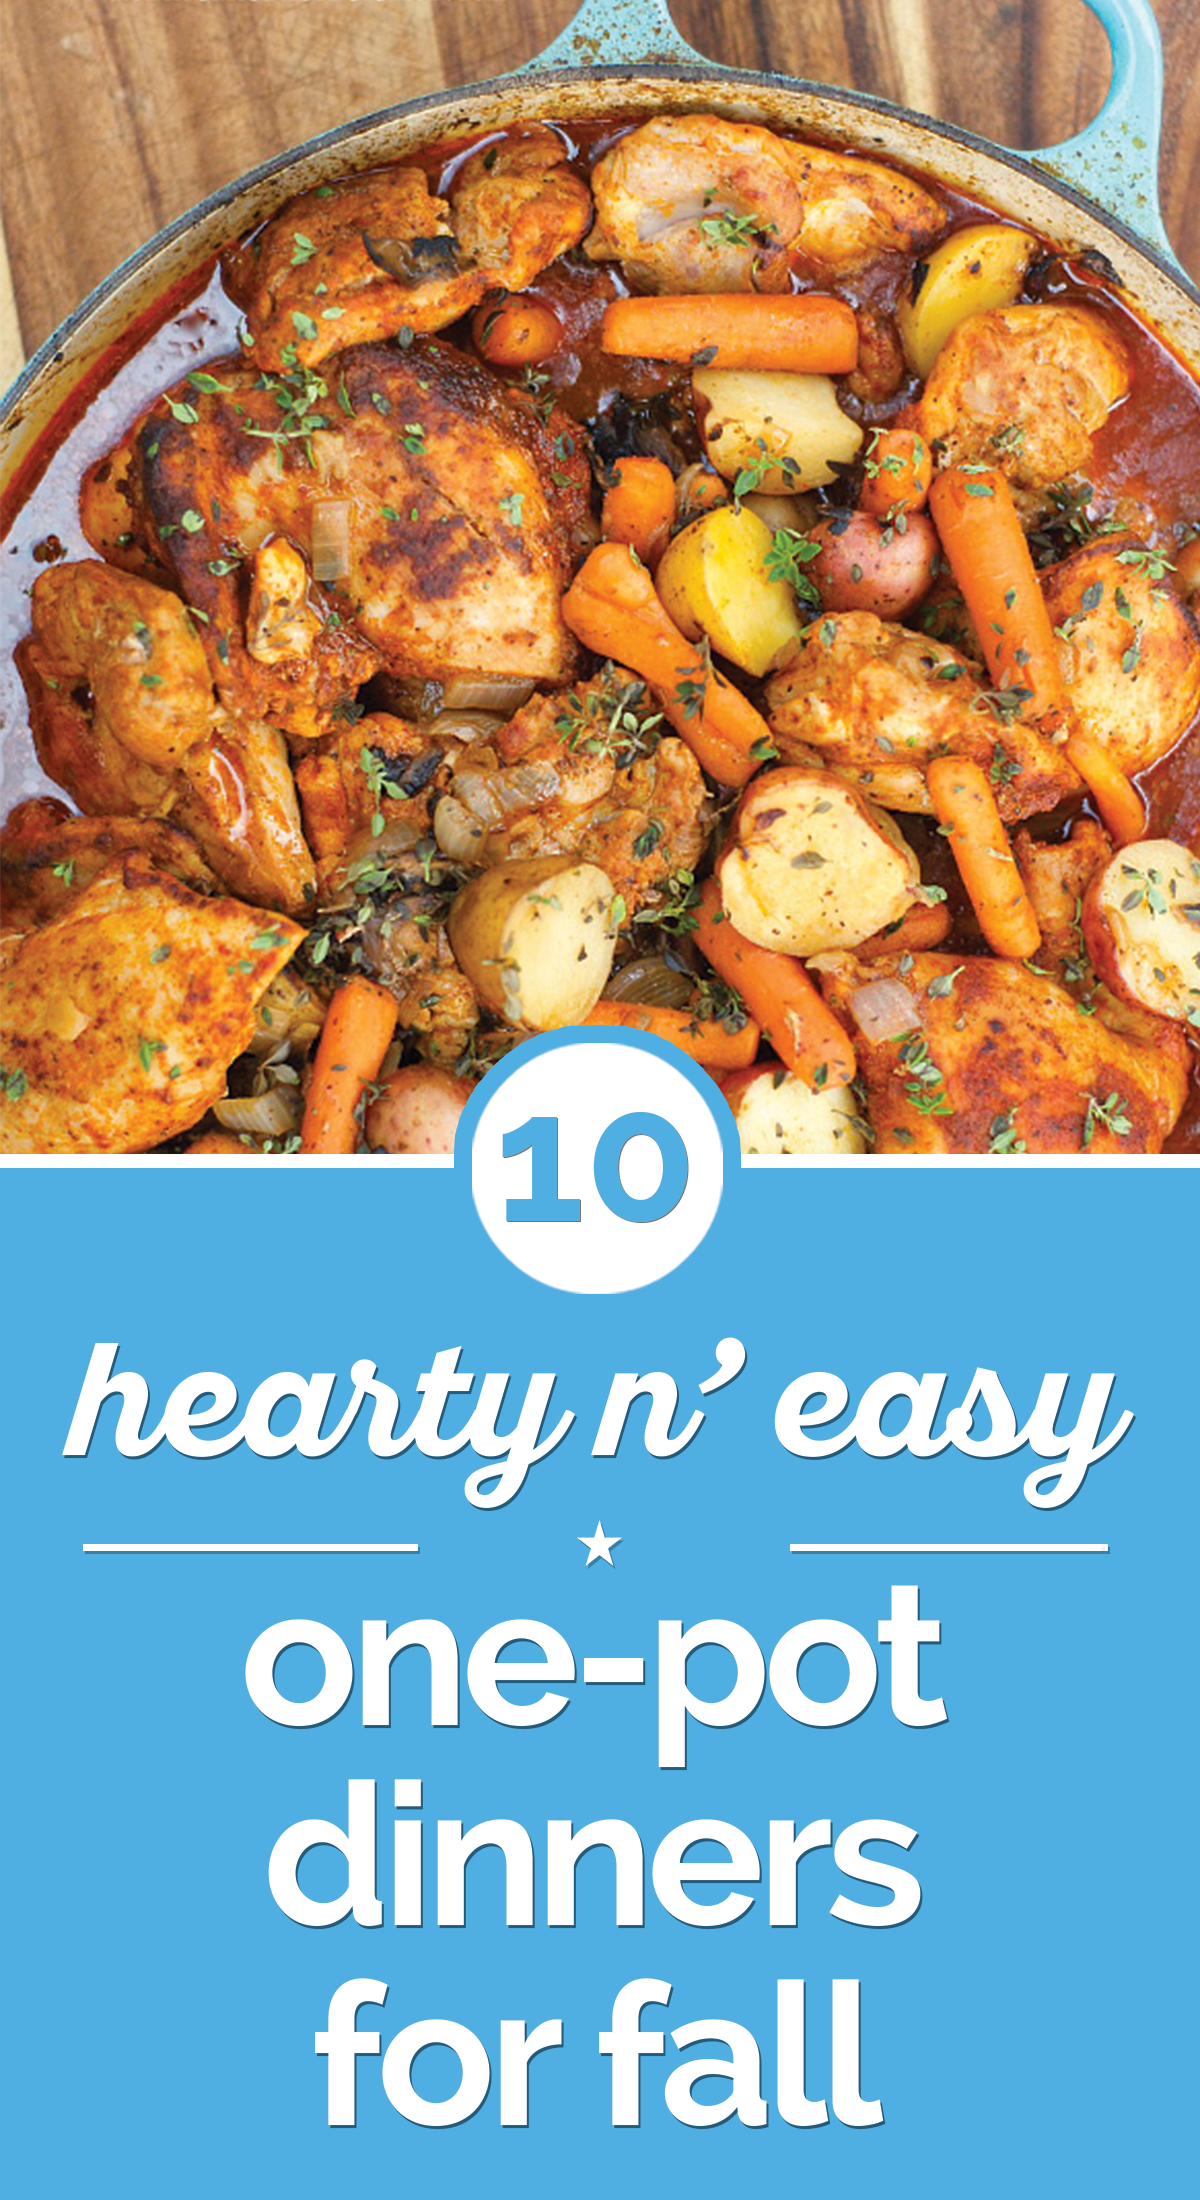 10 Hearty n' Easy One-Pot Dinners for Fall | thegoodstuff